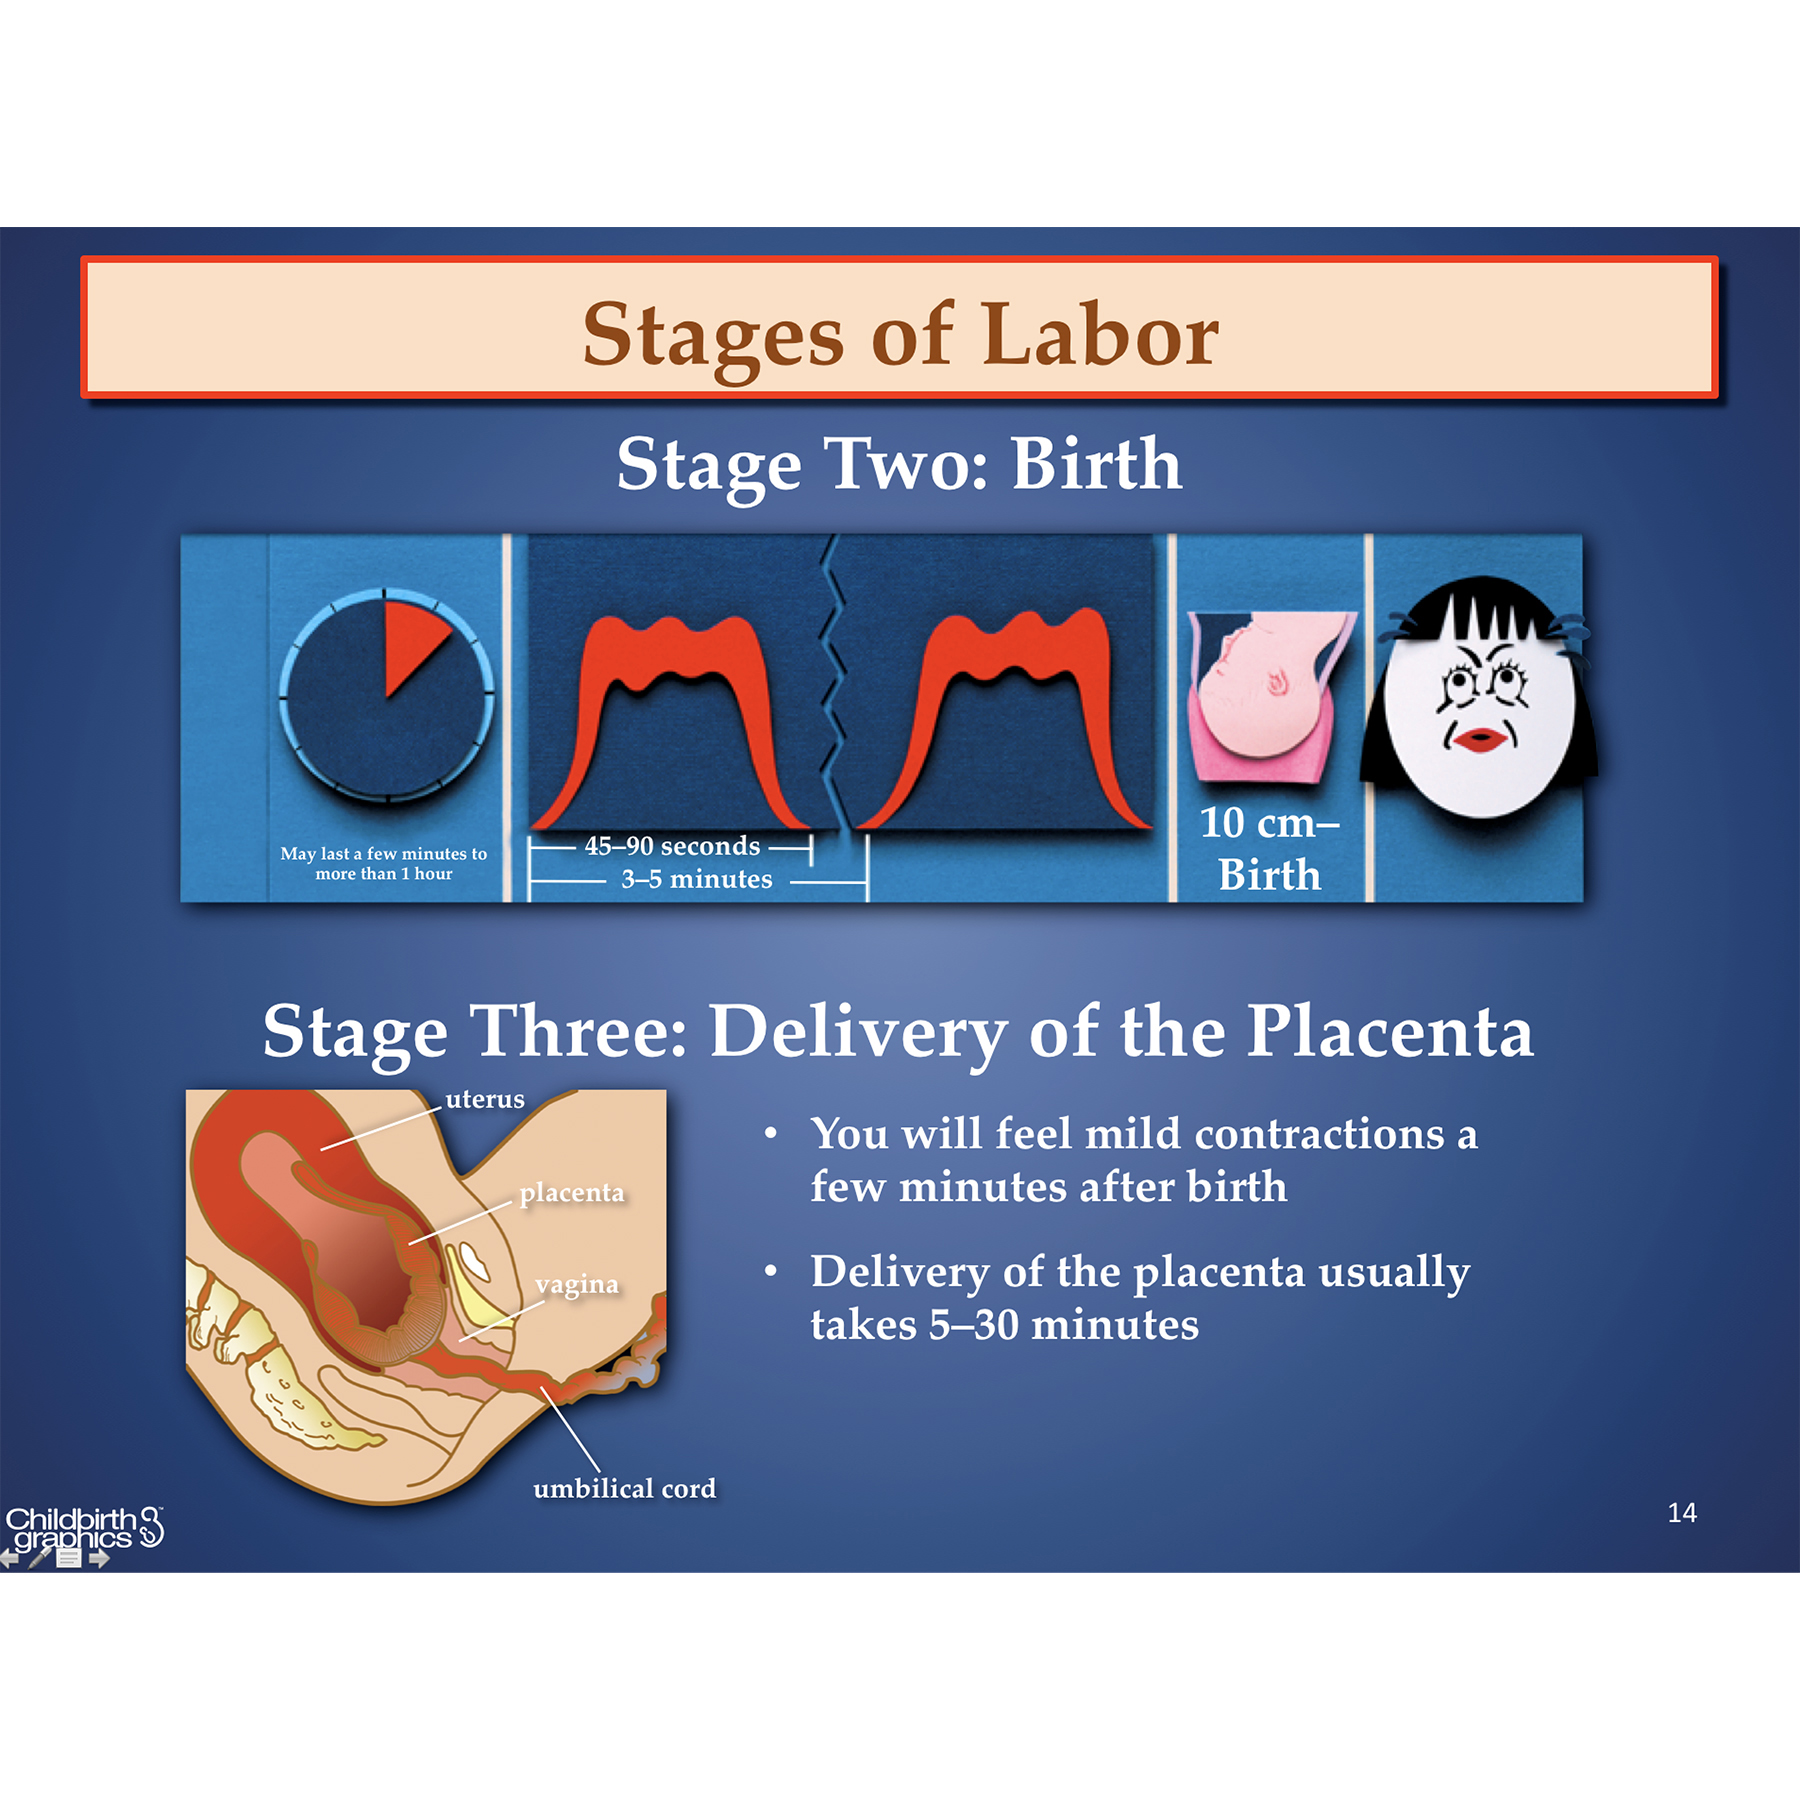 Labor and Birth PowerPoint,English and Spanish powerpoint presentations using paper sculpture illustrations to explain primary labor and birth processes, frame depicts stages 2 and 3 labor, Childbirt